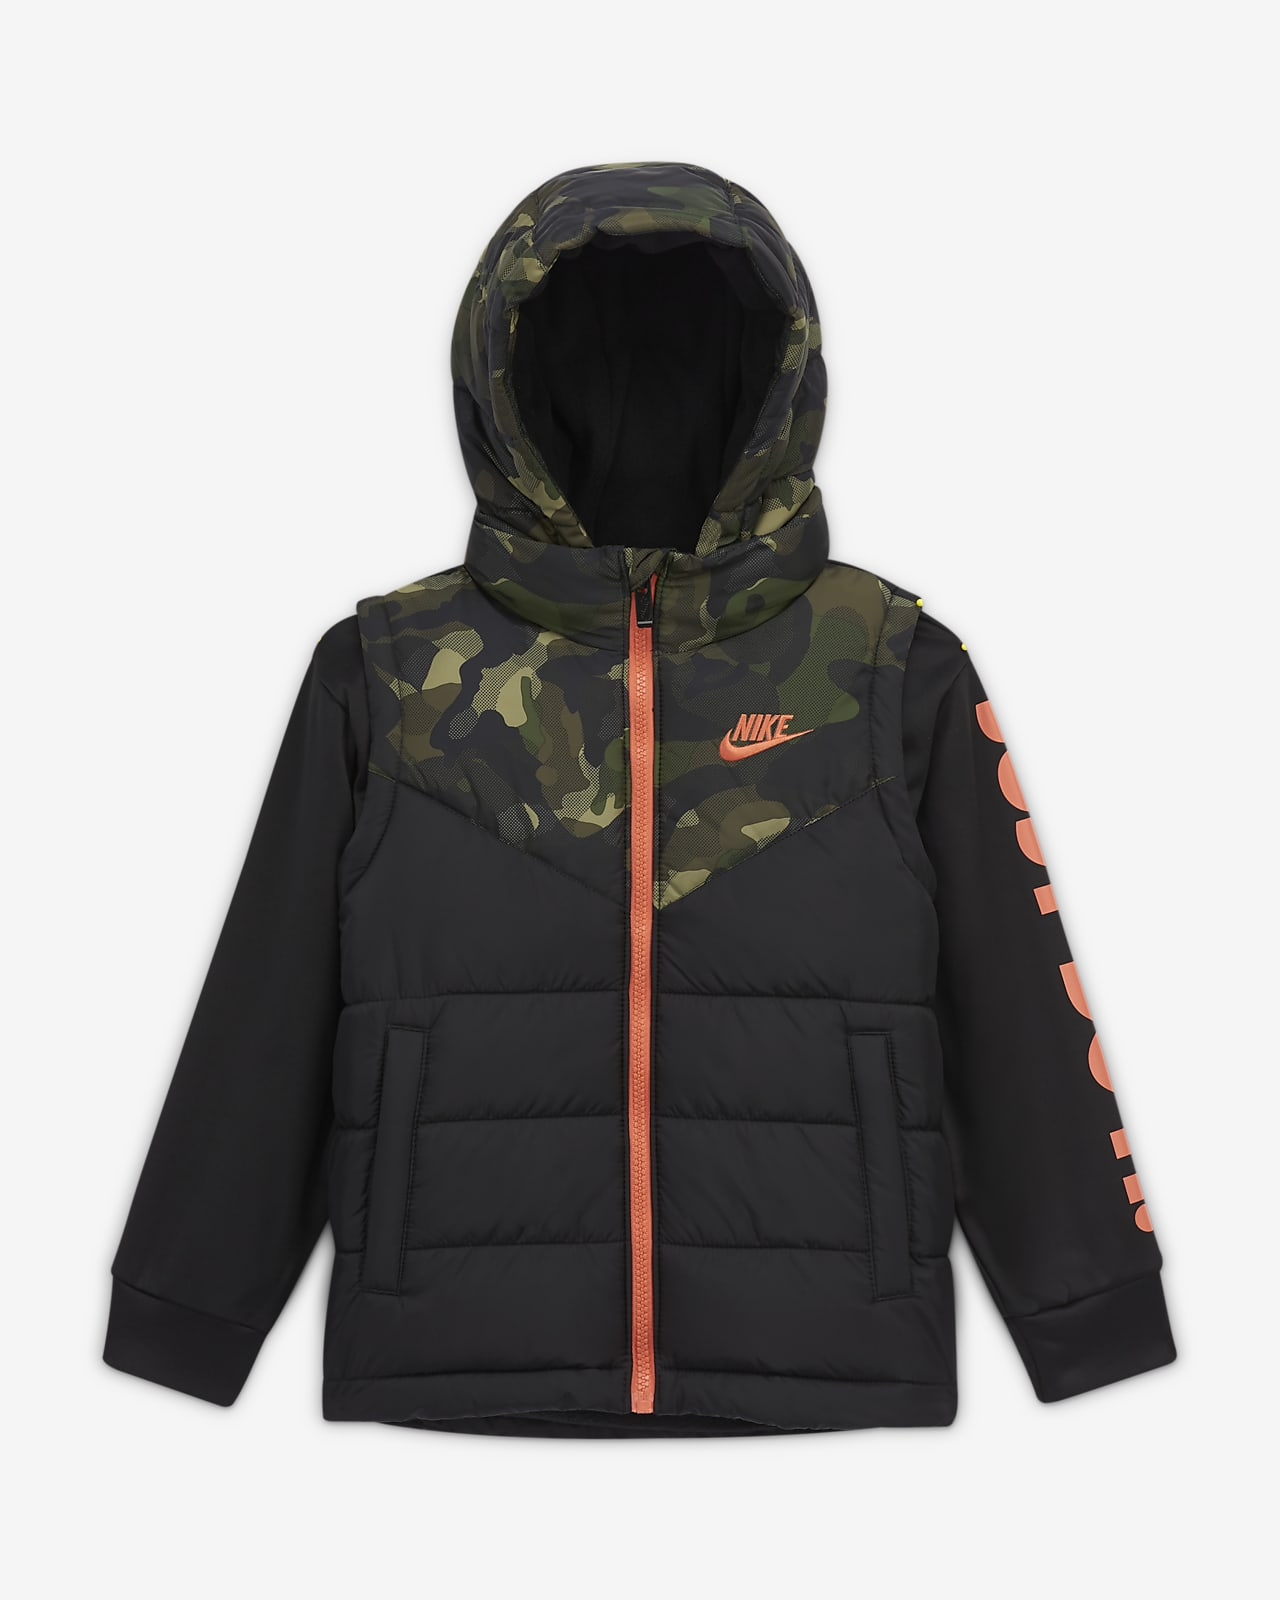 Nike Little Kids' Full-Zip Jacket